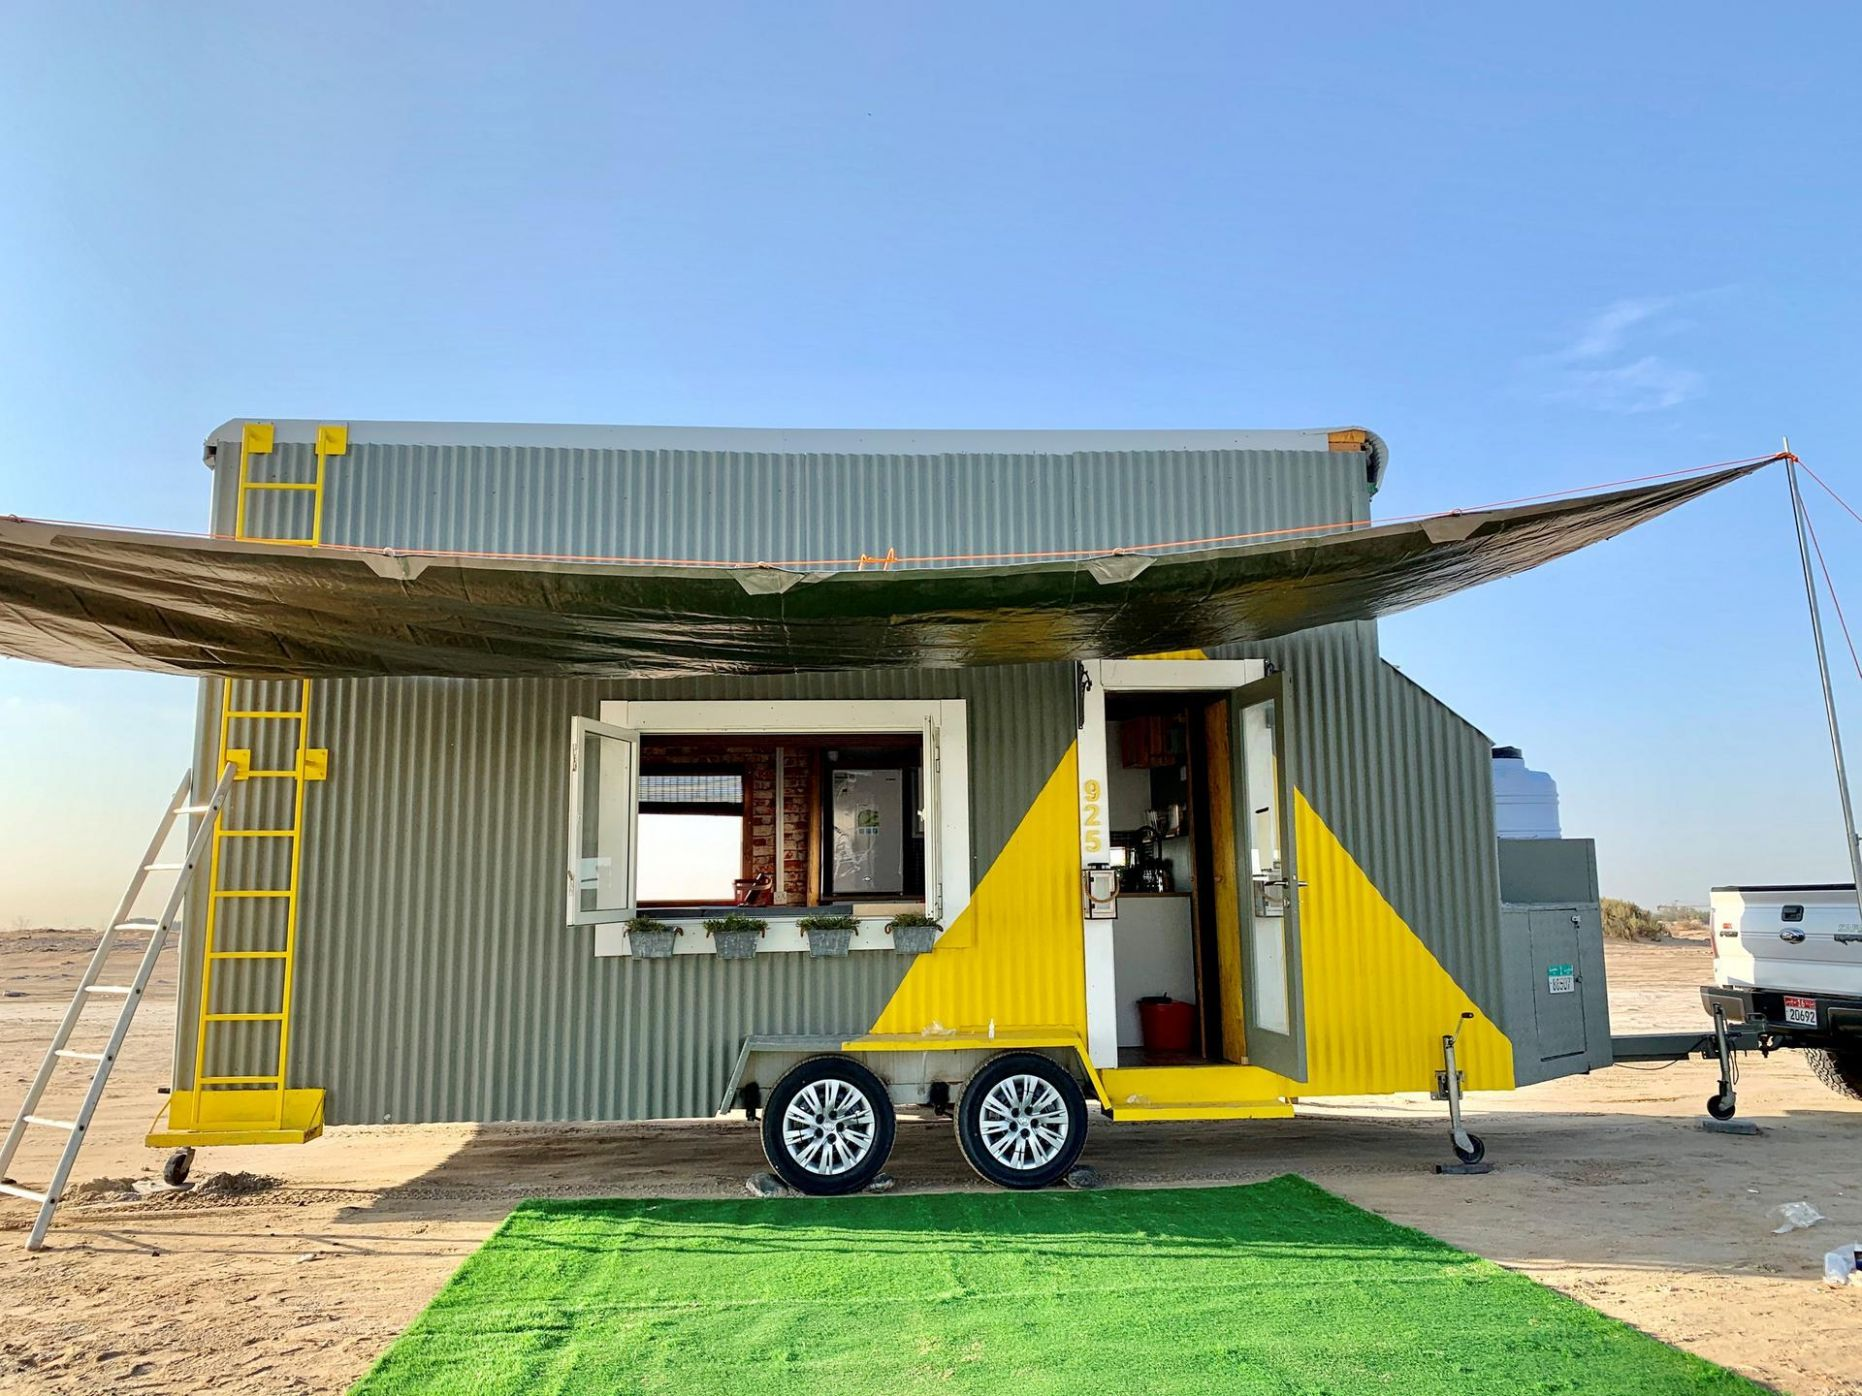 A labour of love: inside Abu Dhabi's Dh9,9 tiny house - The ...